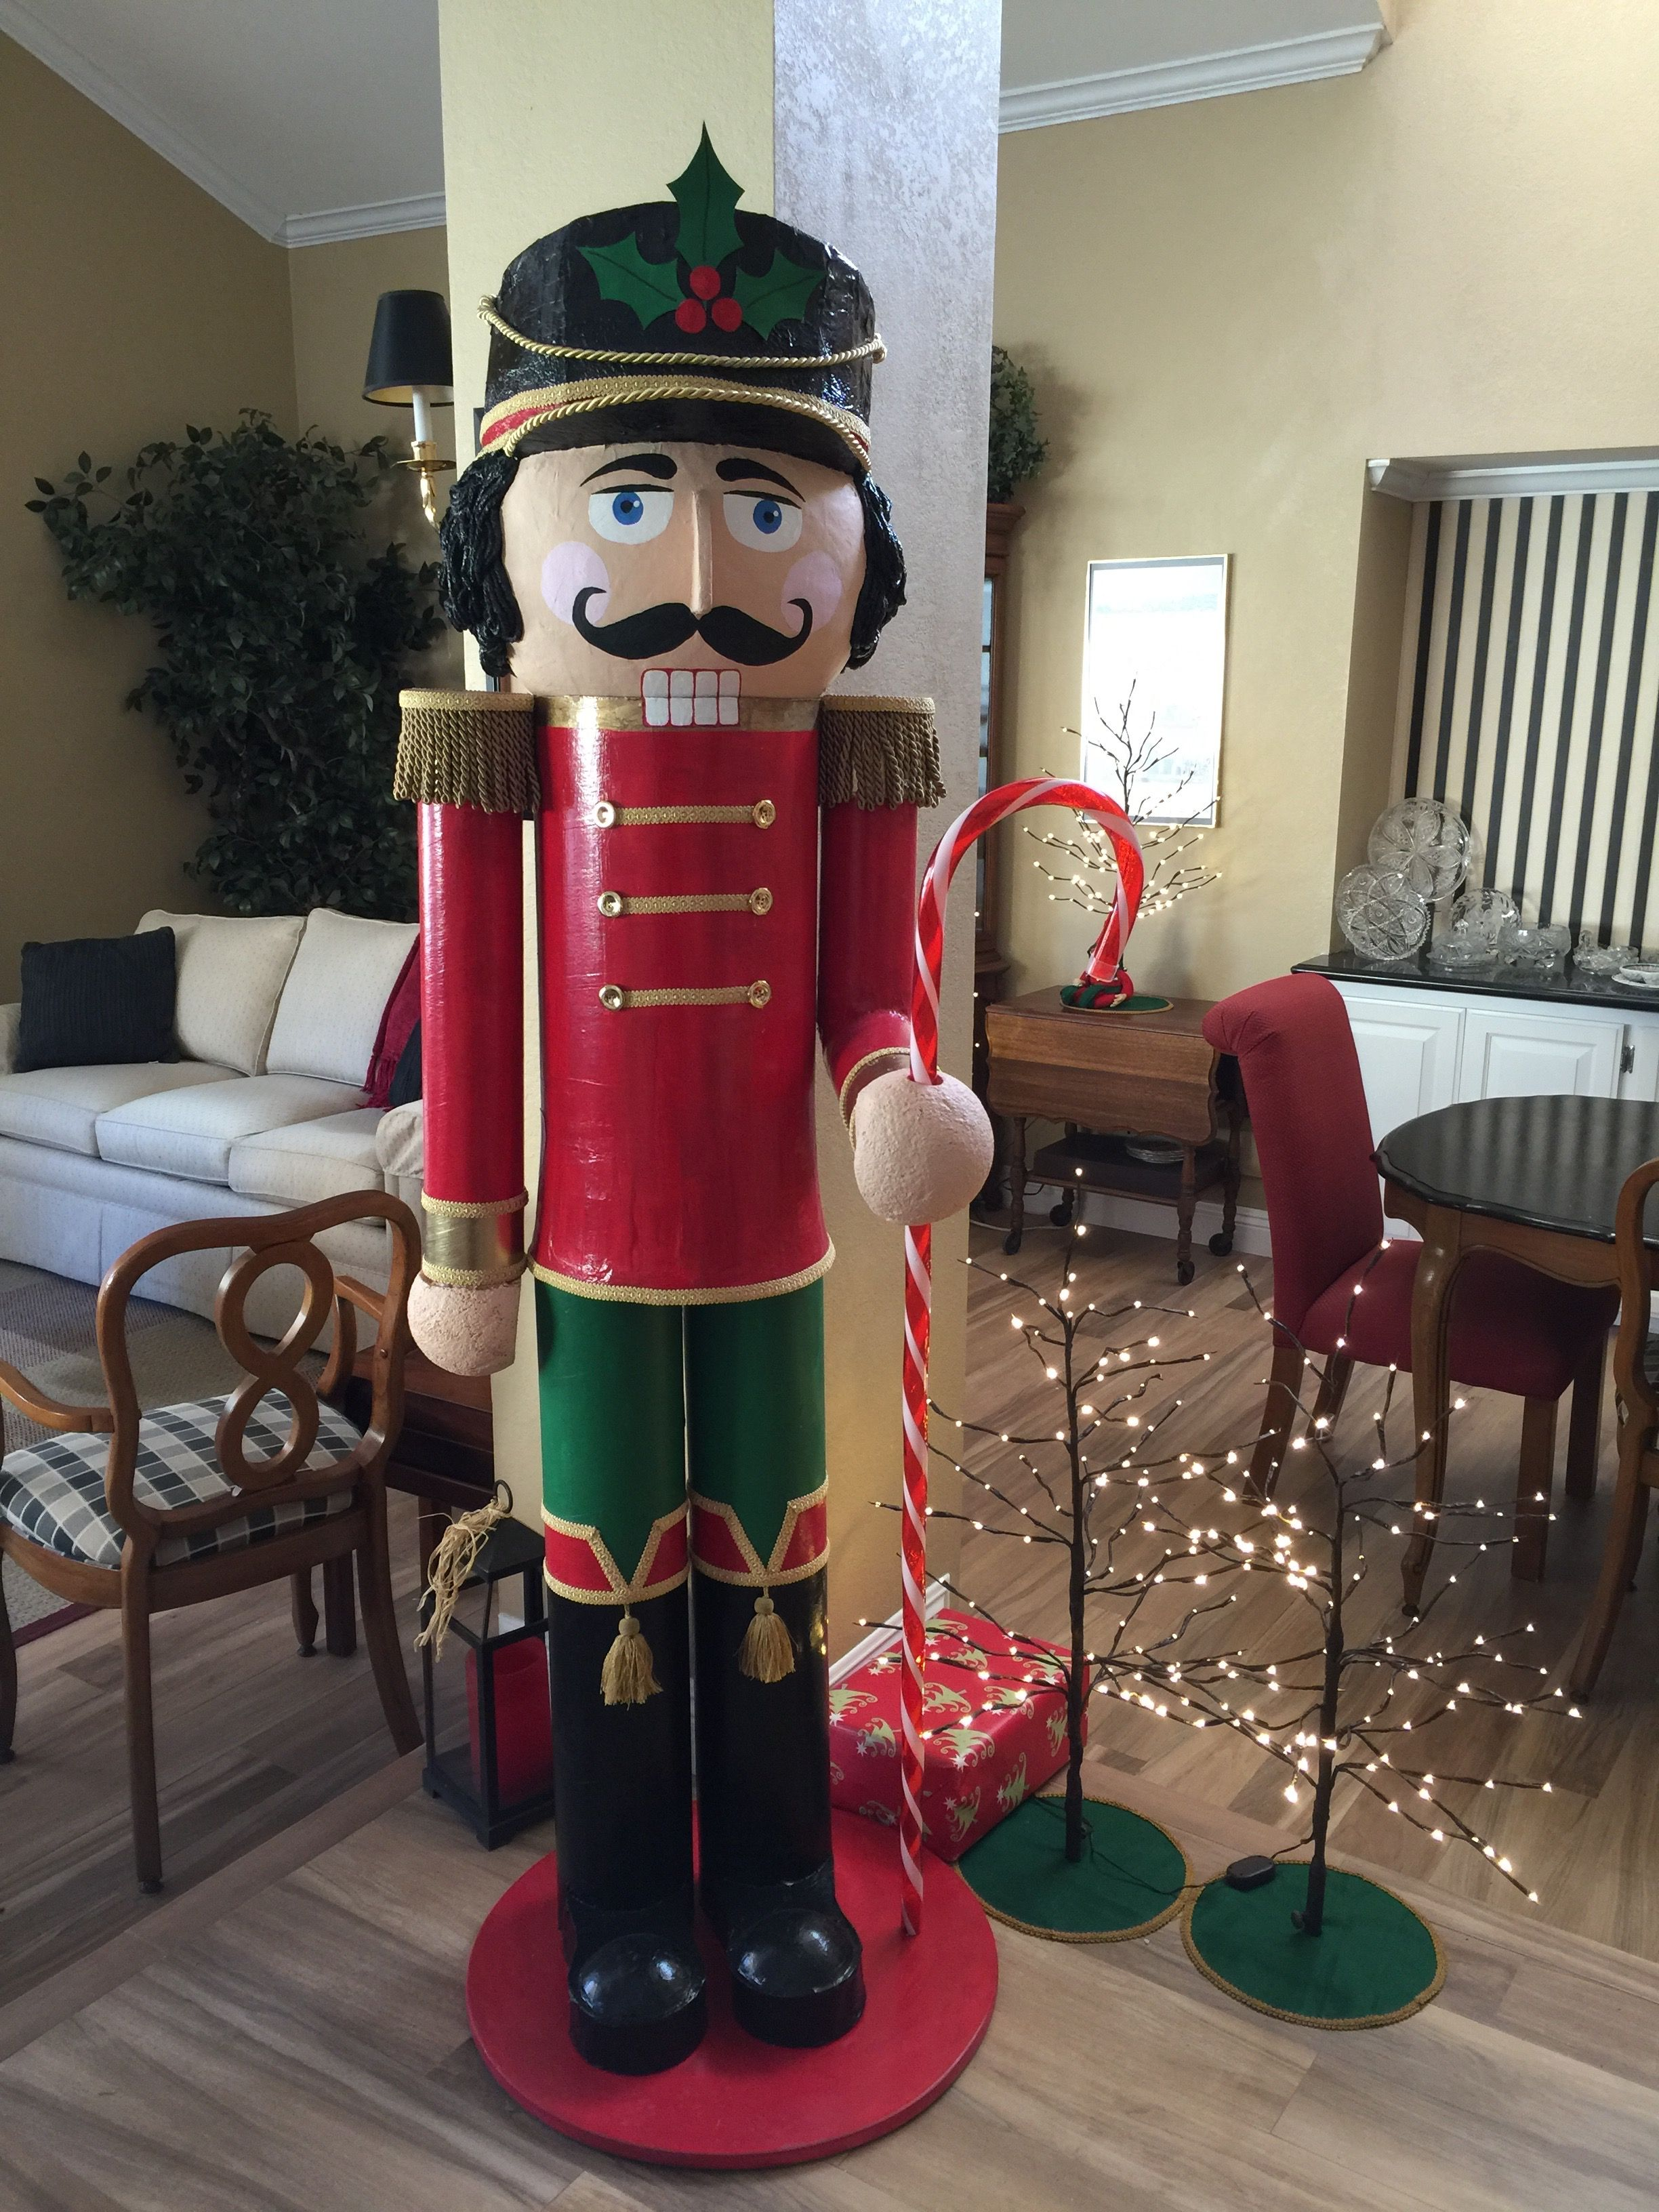 Yes You Can Make This Nutcracker That Stands Over 6 Feet Tall Make It Alone Or As A Team For Yourself Christmas Yard Art Christmas Projects Nutcrackers Diy